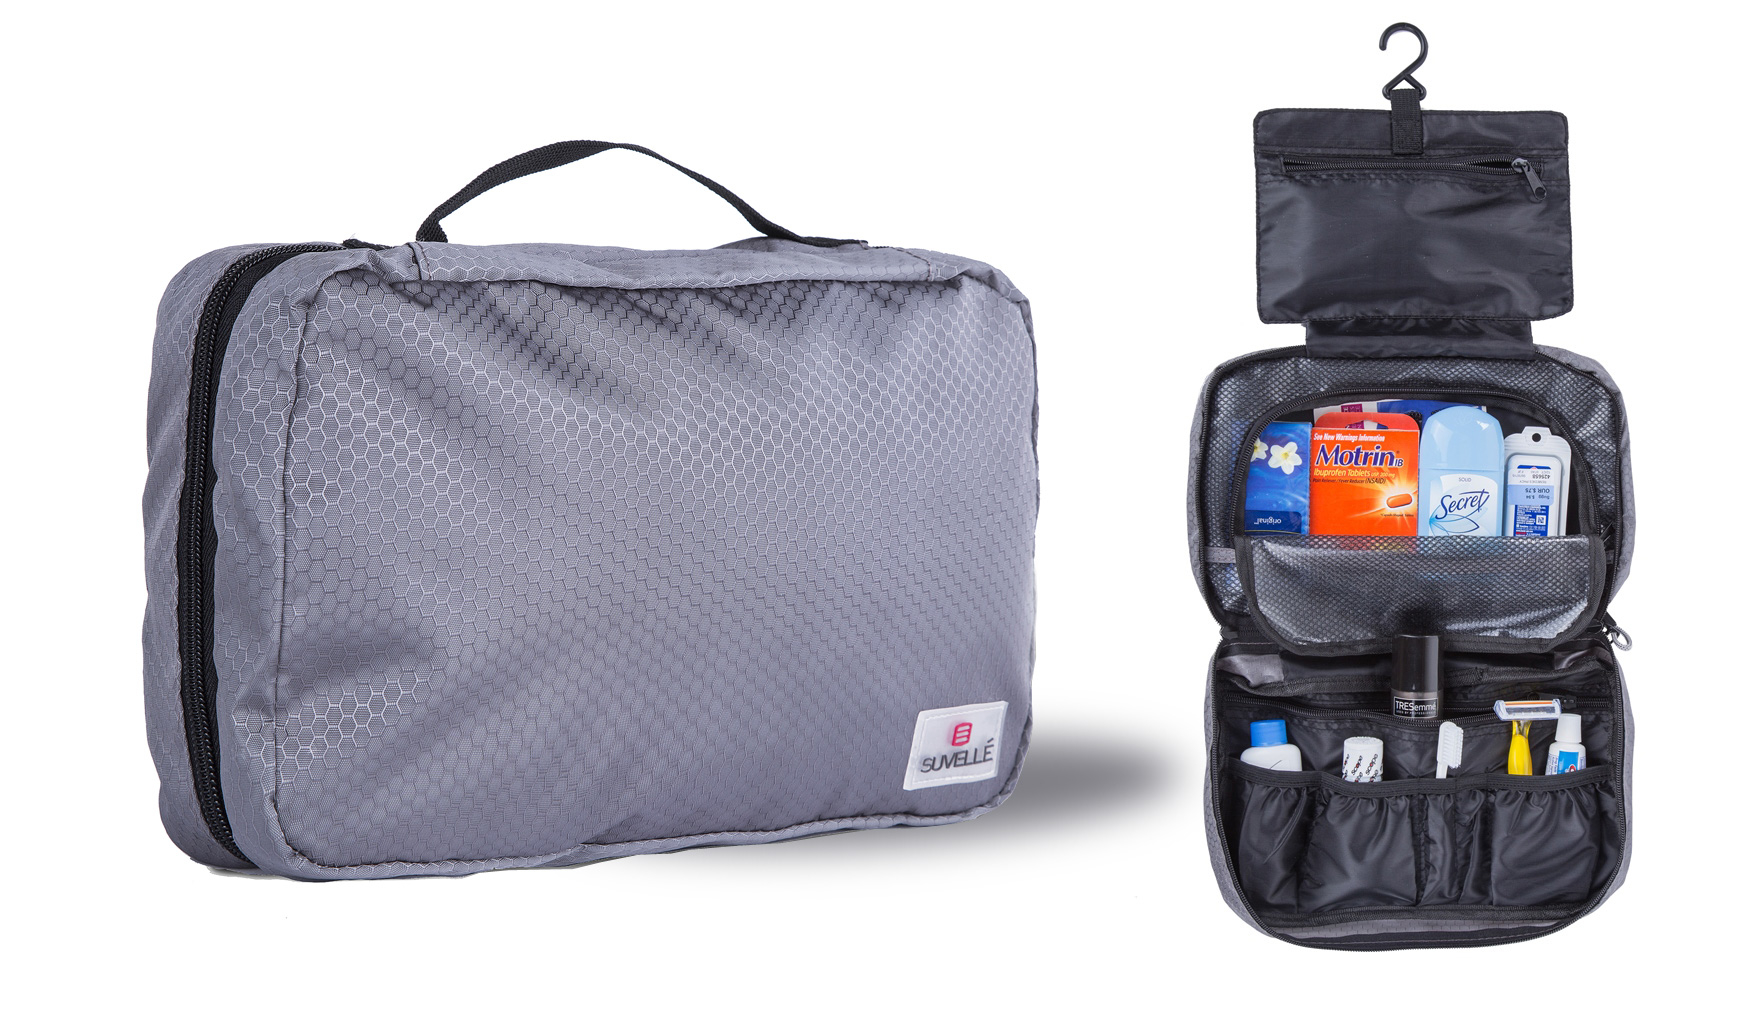 Suvelle Hanging Toiletry Bag Travel Kit Organizer - Grey 577188b6923d6fda258b459c